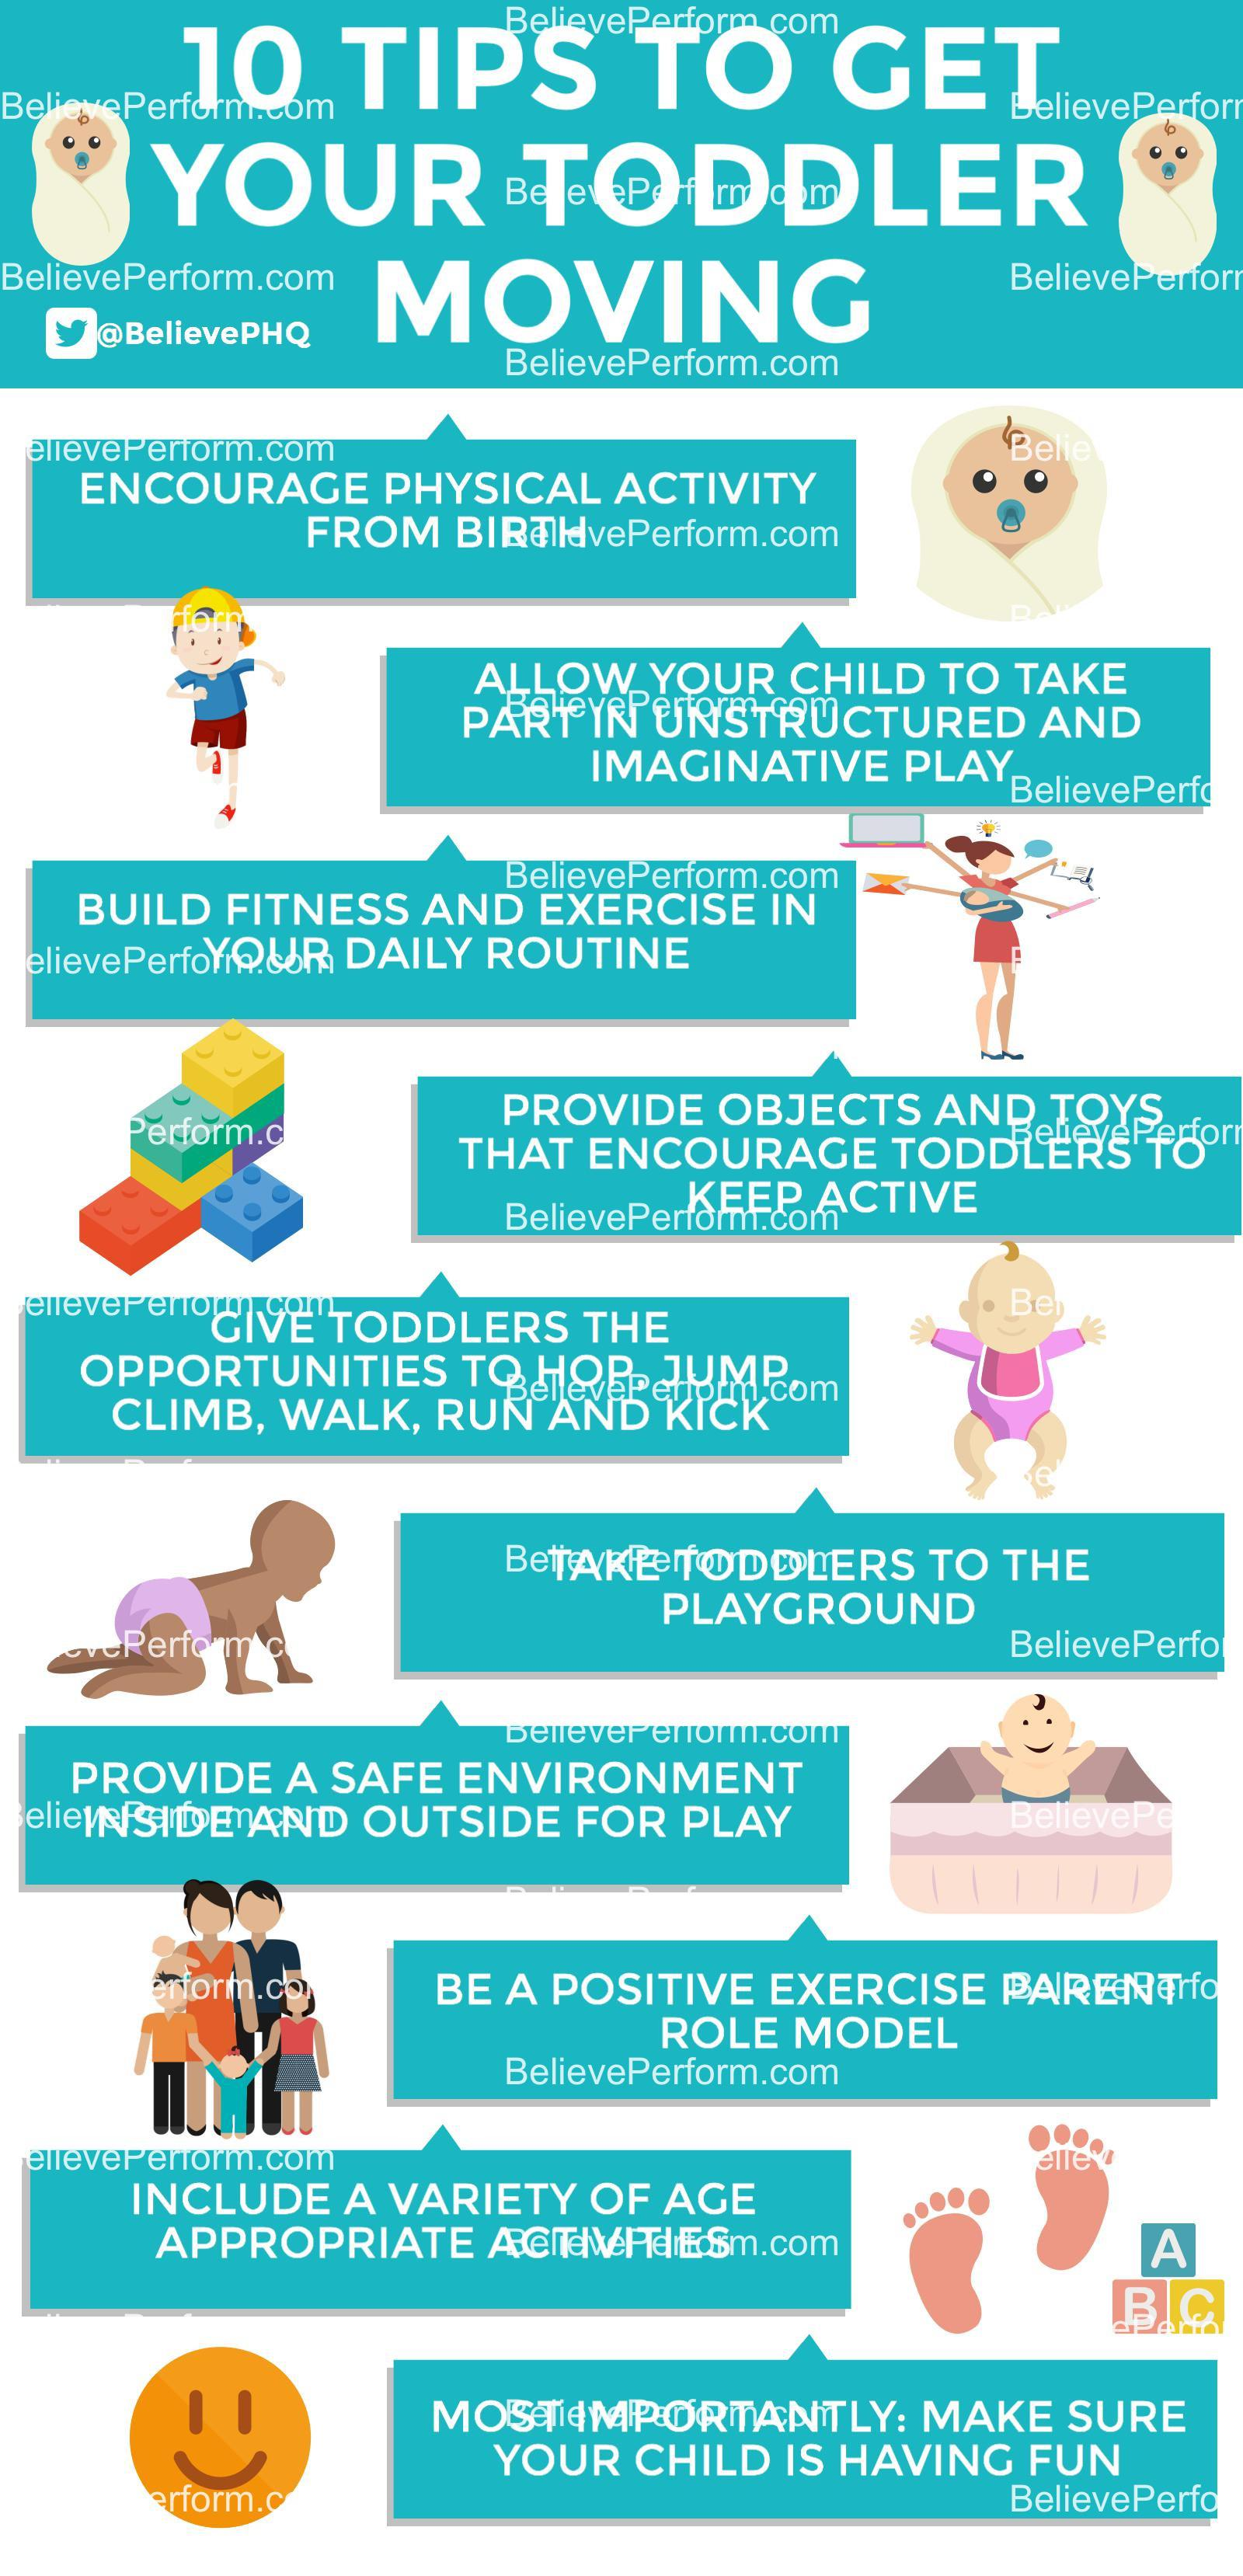 10 tips to get your toddler moving